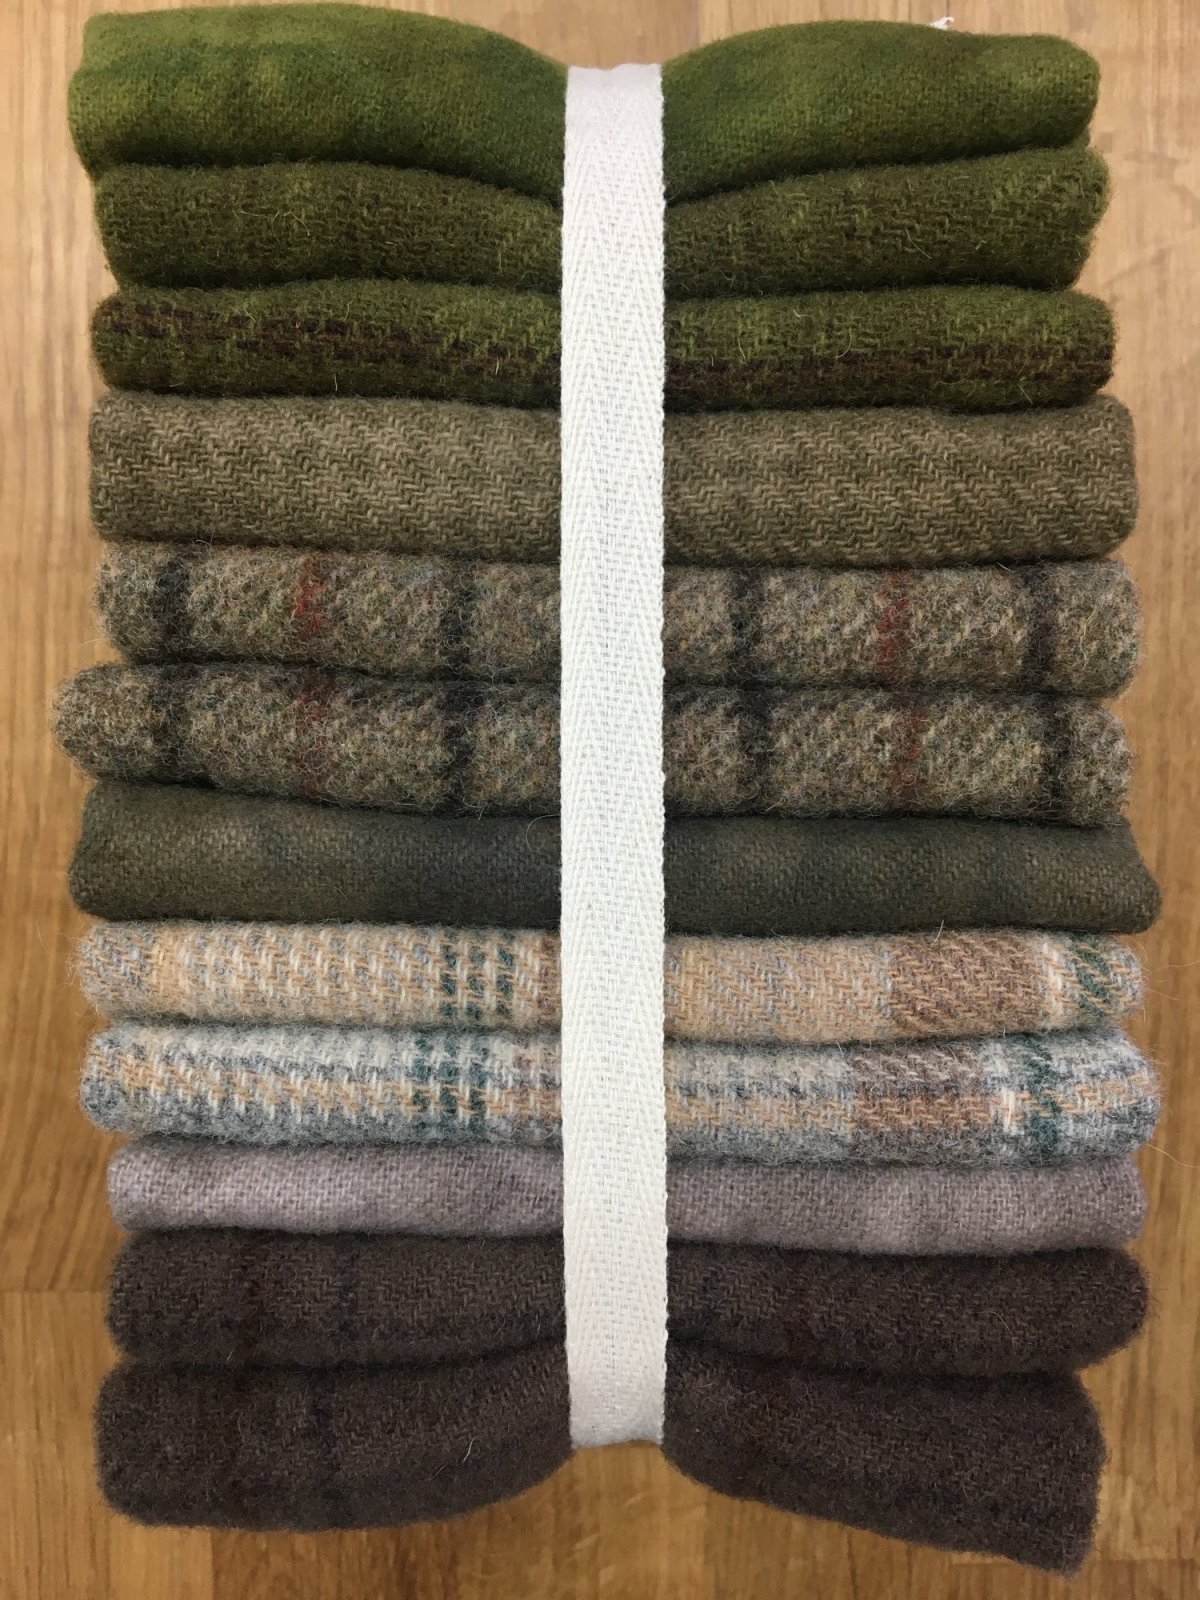 Wool of the Month Club - March